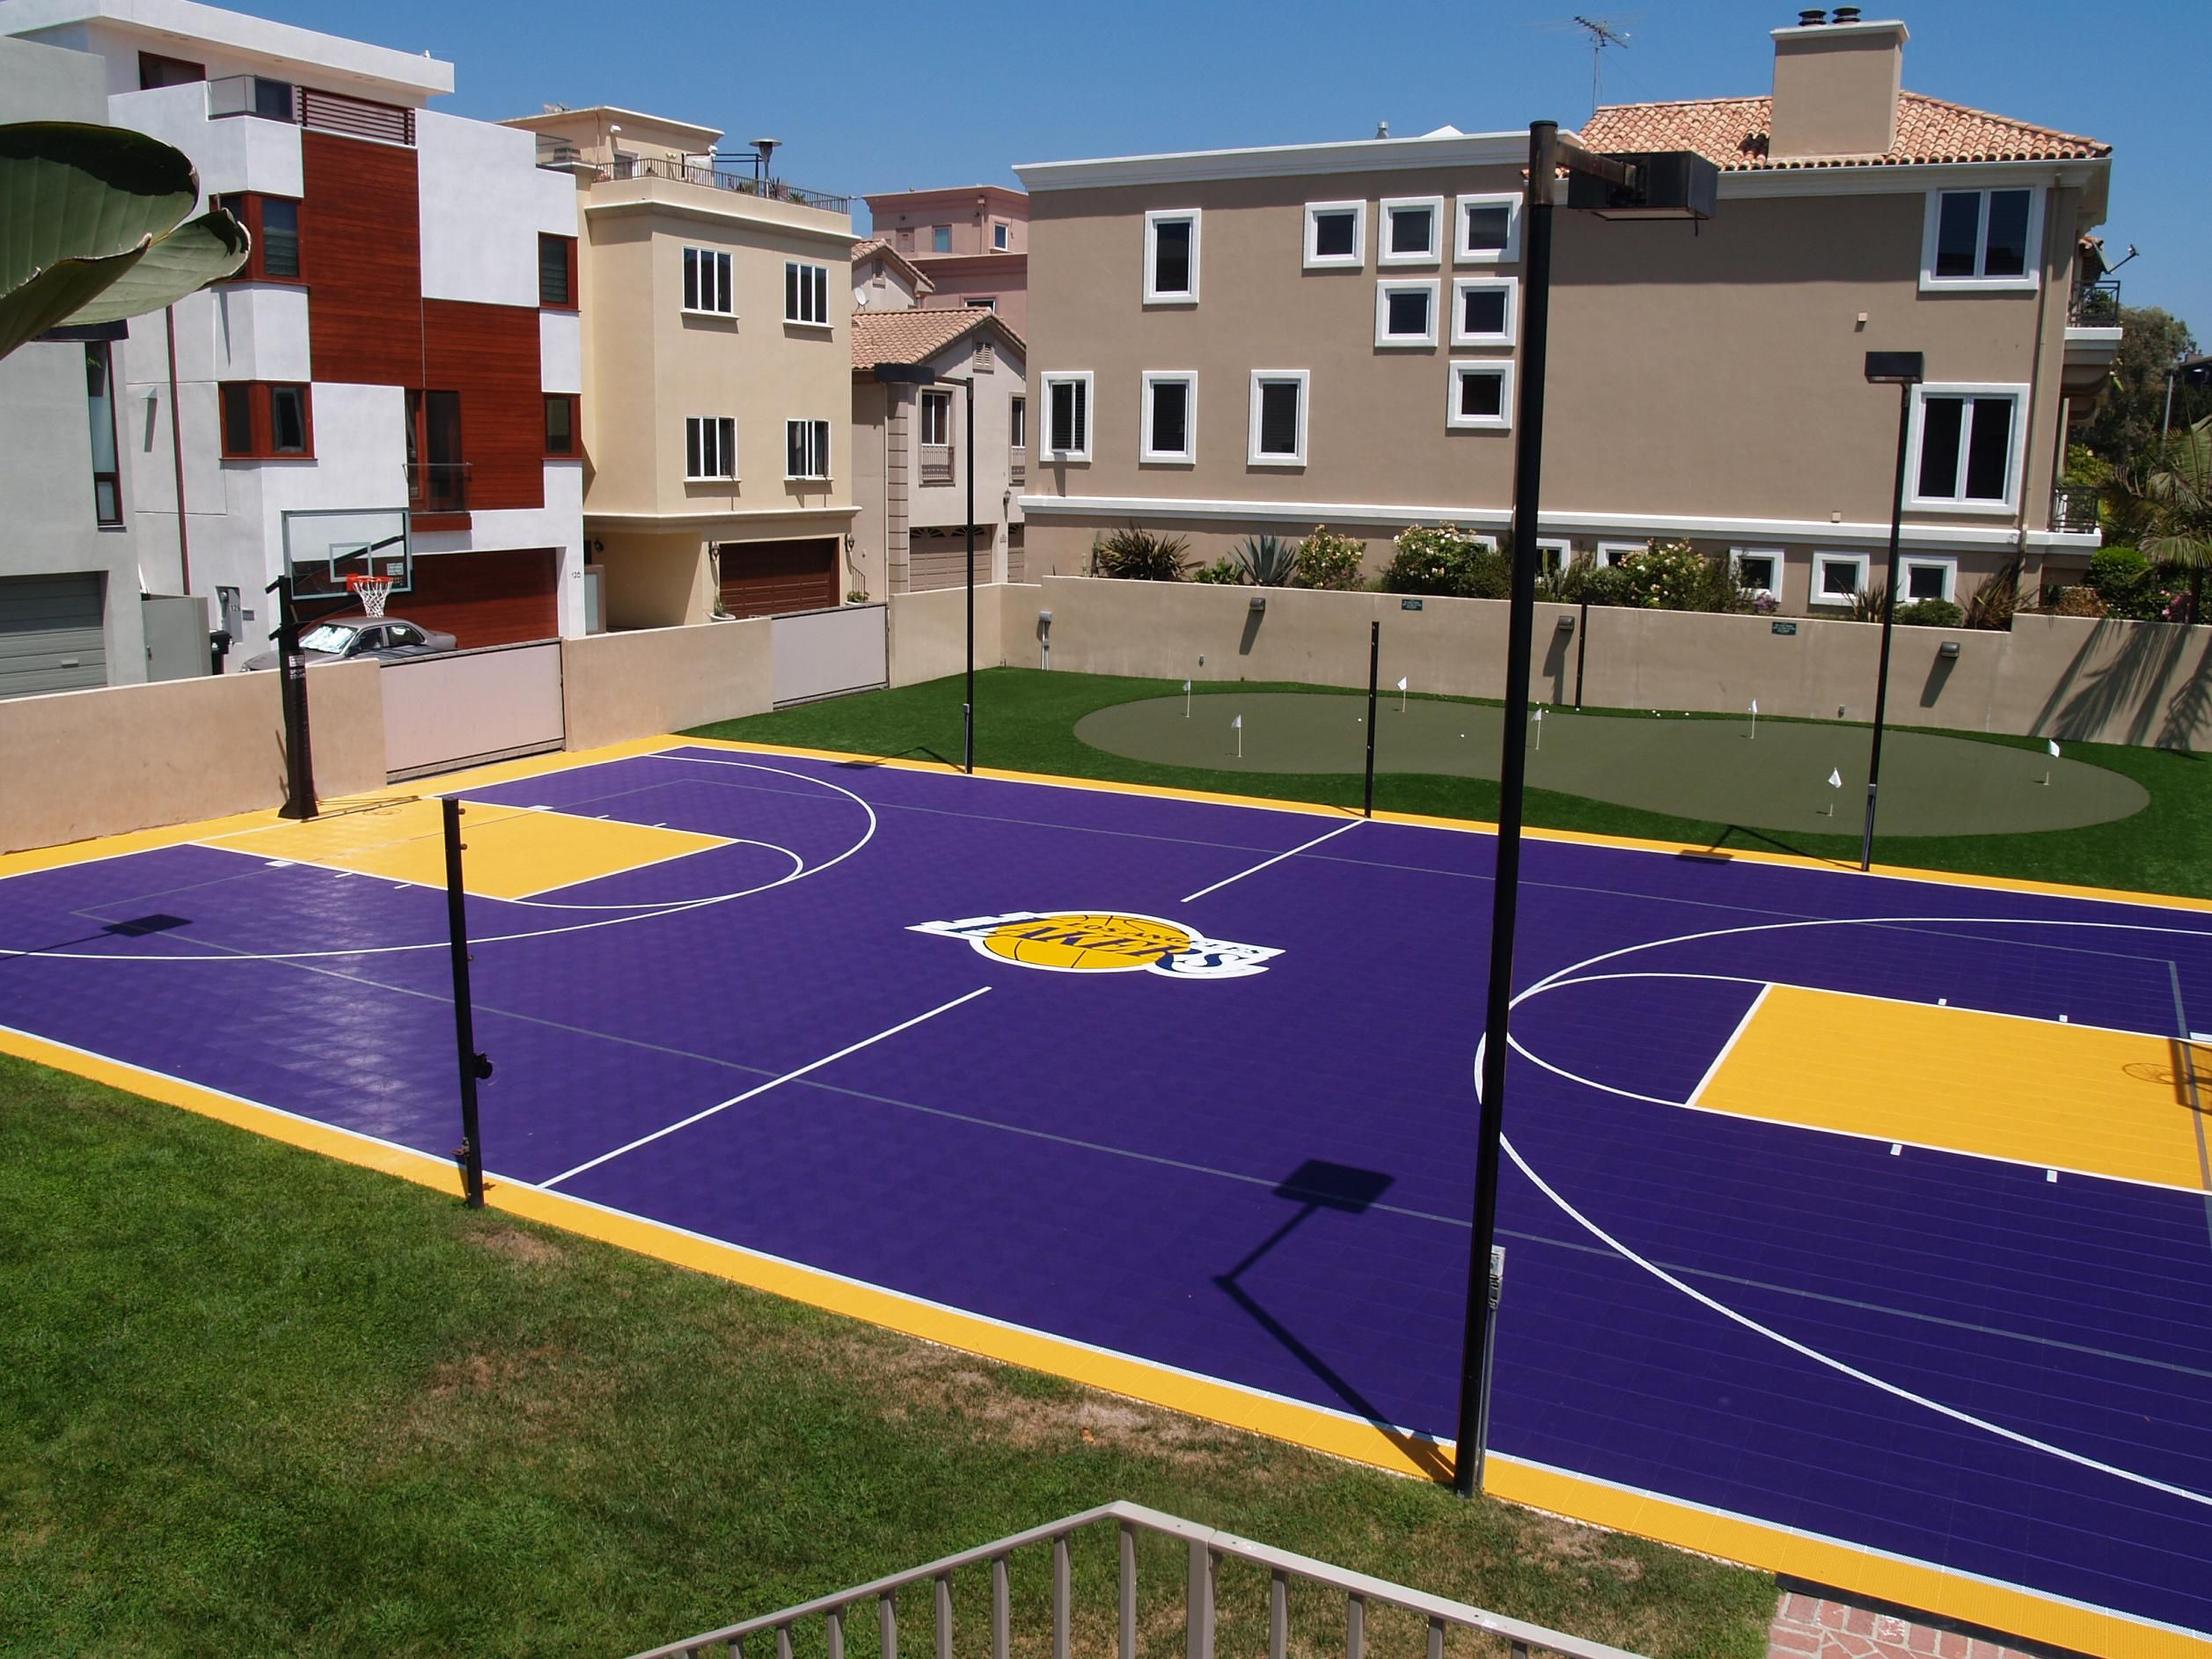 lakers fan check out this backyard dream court go purple